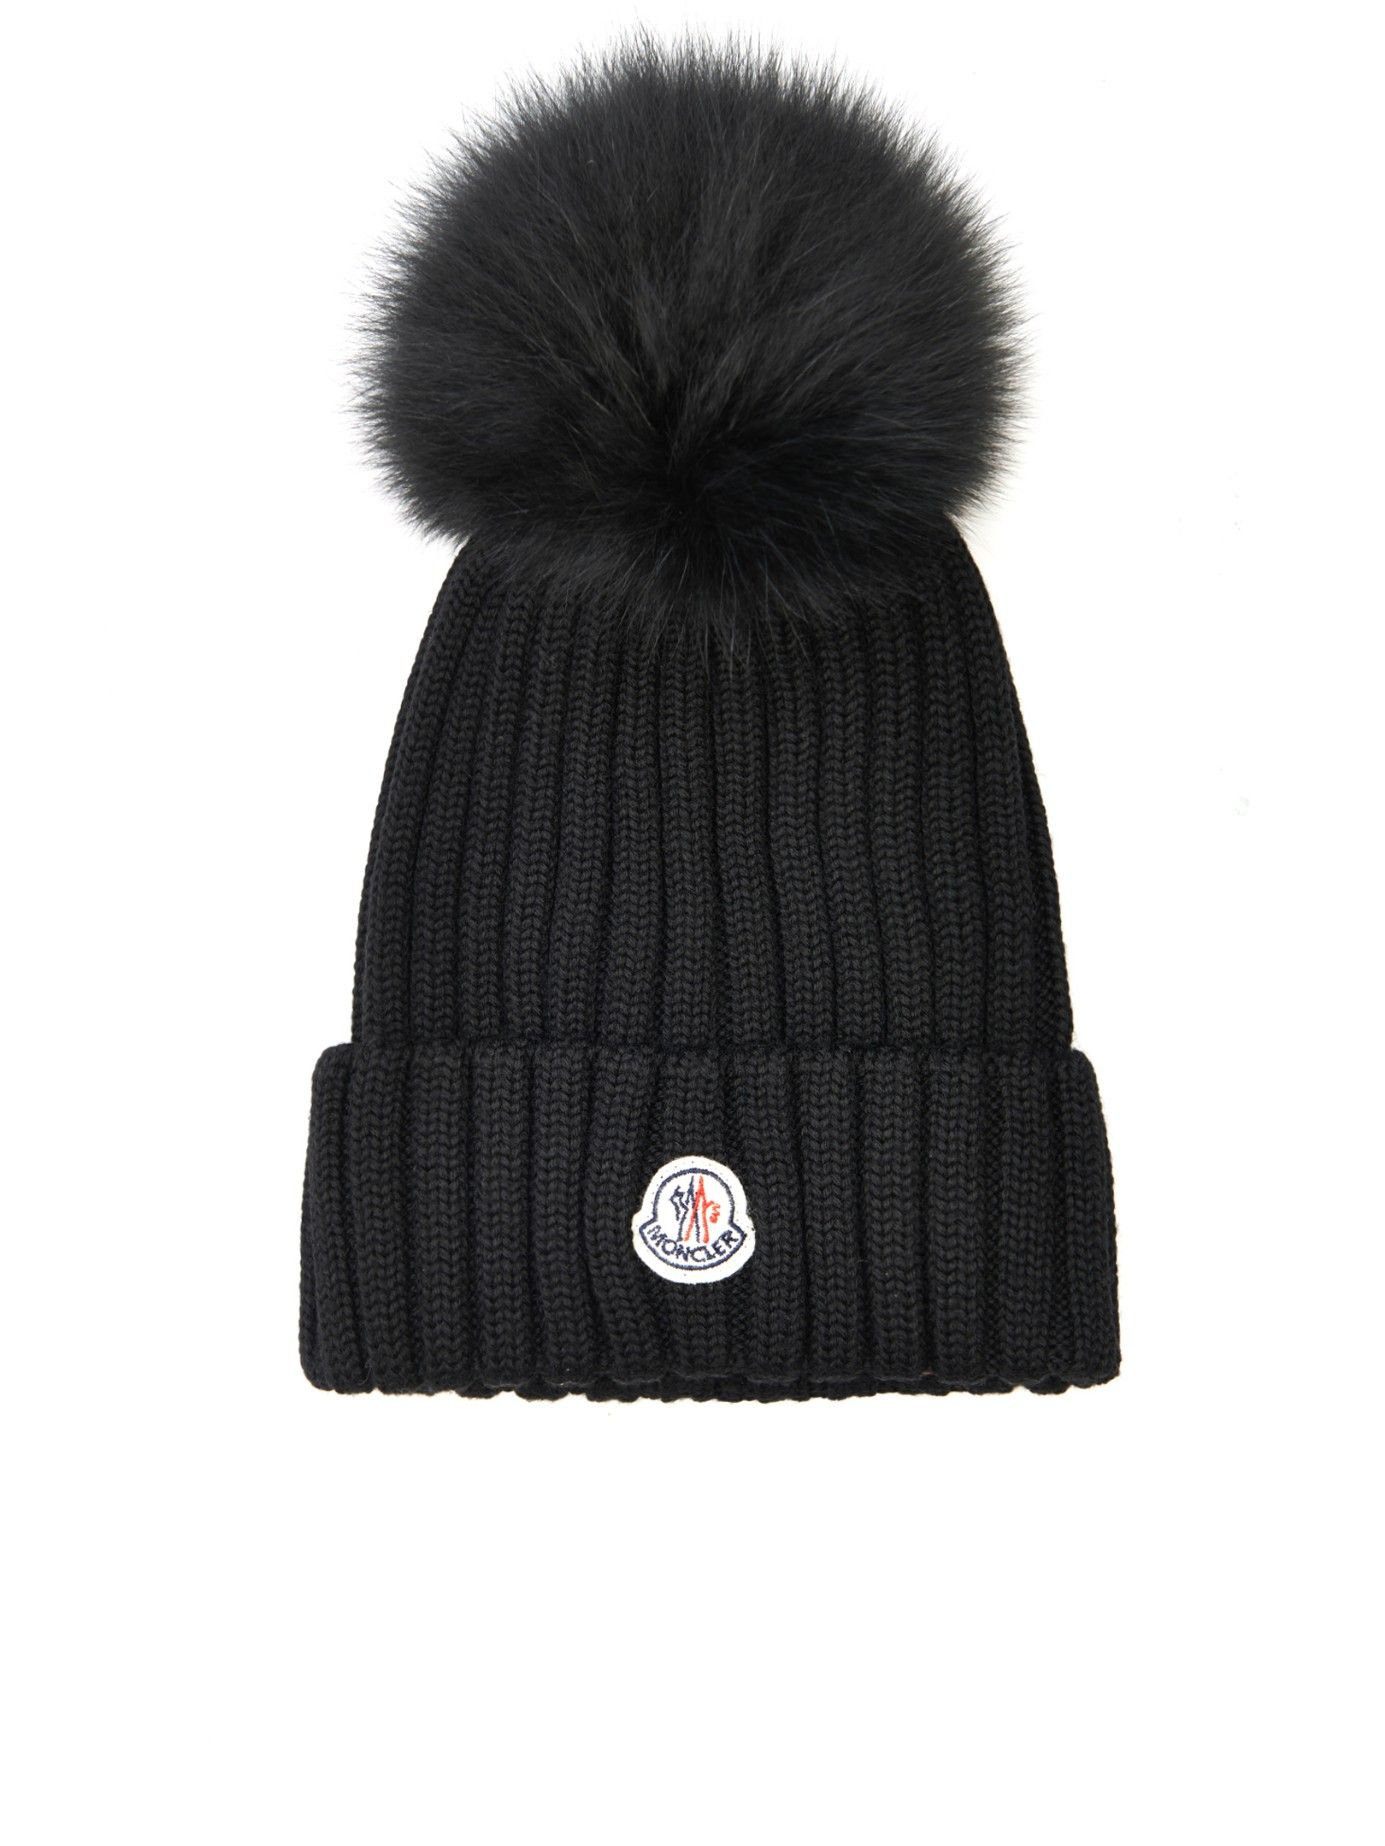 e1e15234117 Fox-fur pom-pom knitted hat